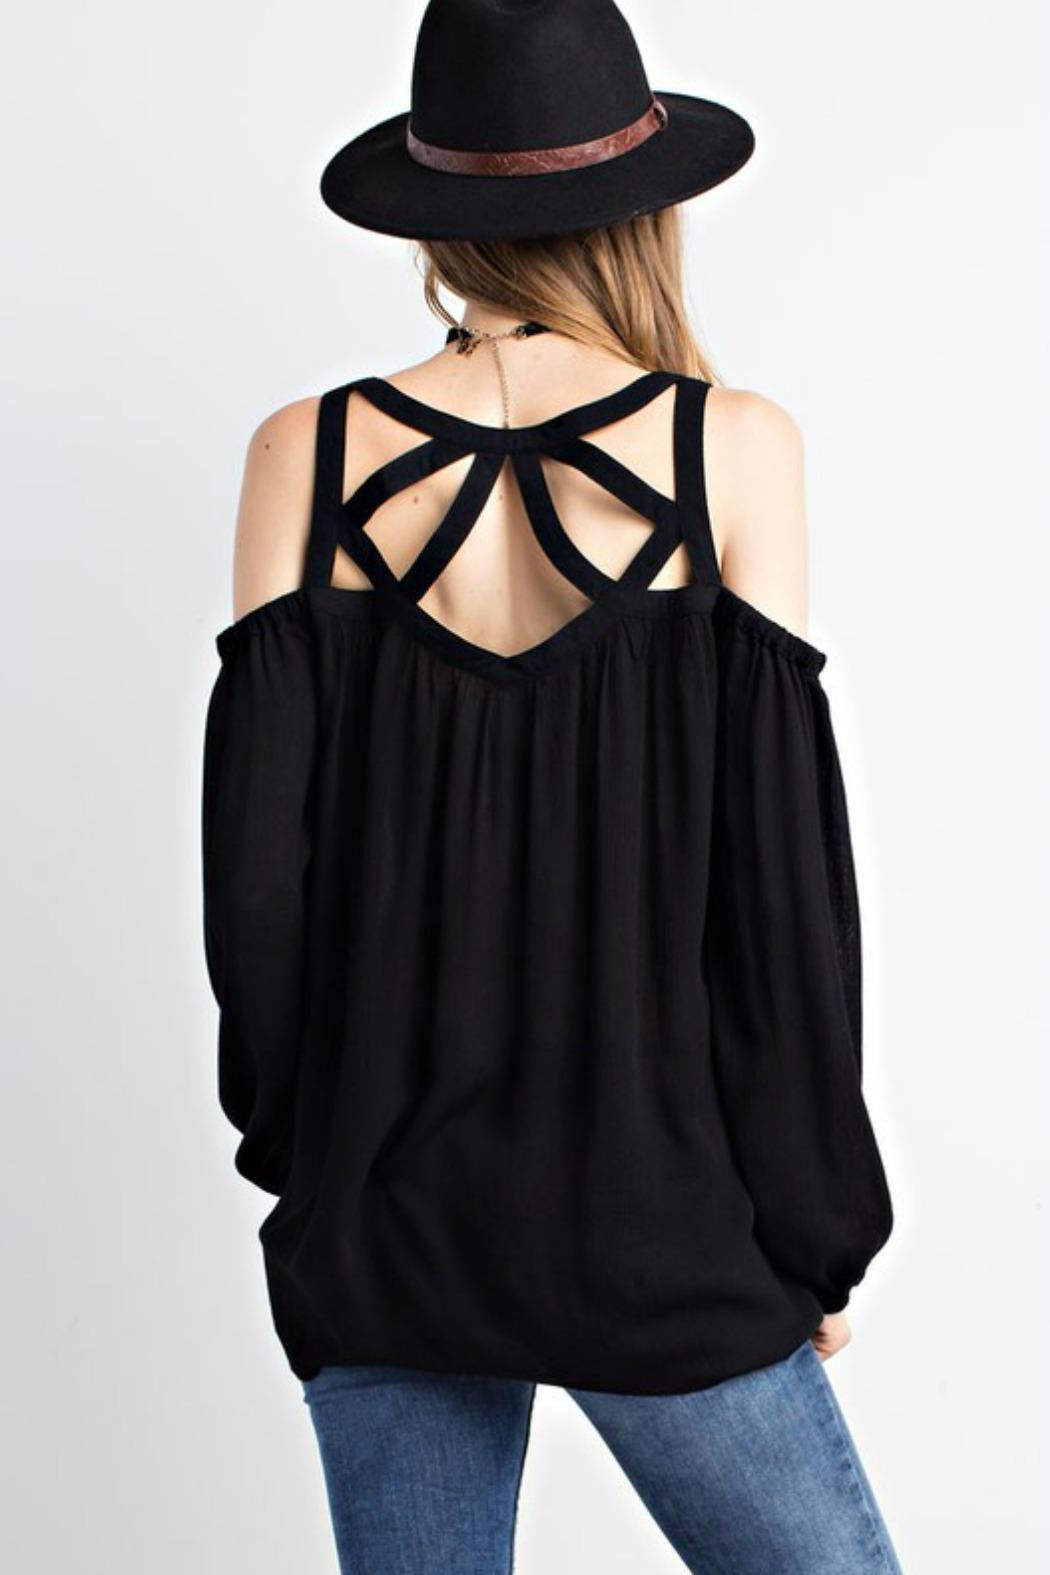 mittoshop black strappy top from connecticut by deja vu